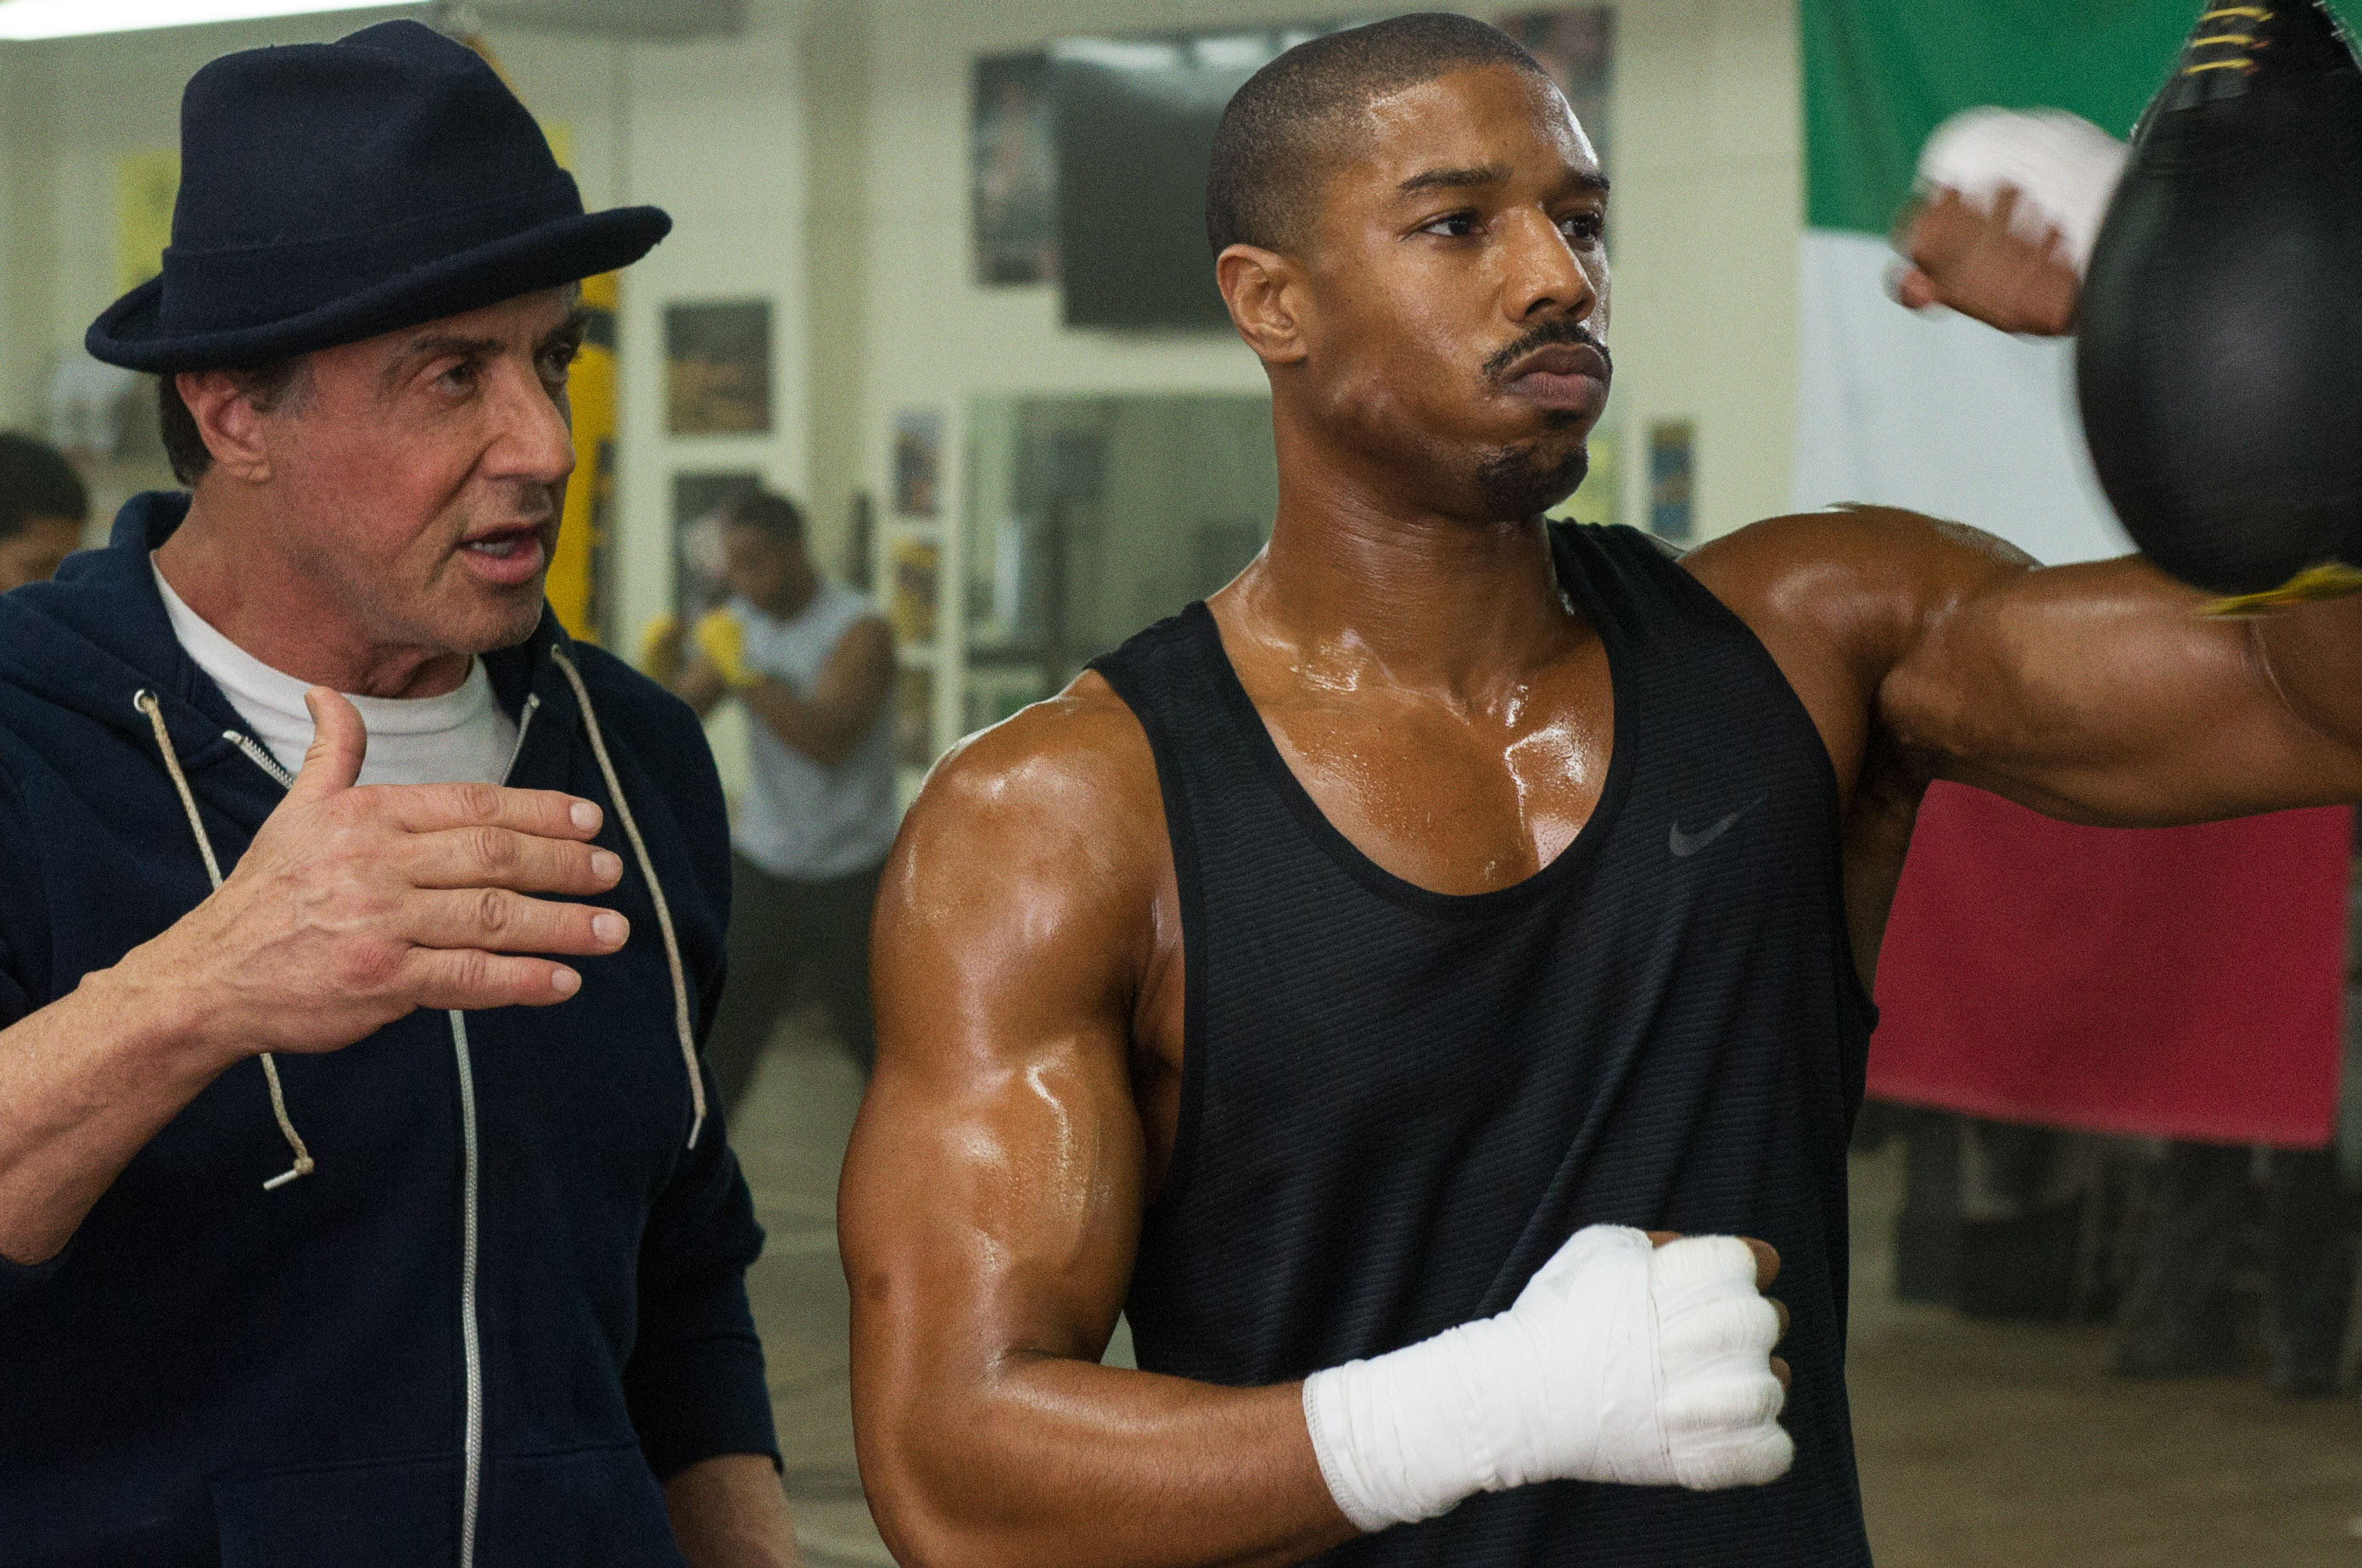 Knockout knockoff: 'Creed' turns 'Rocky 7' into underdog triumph